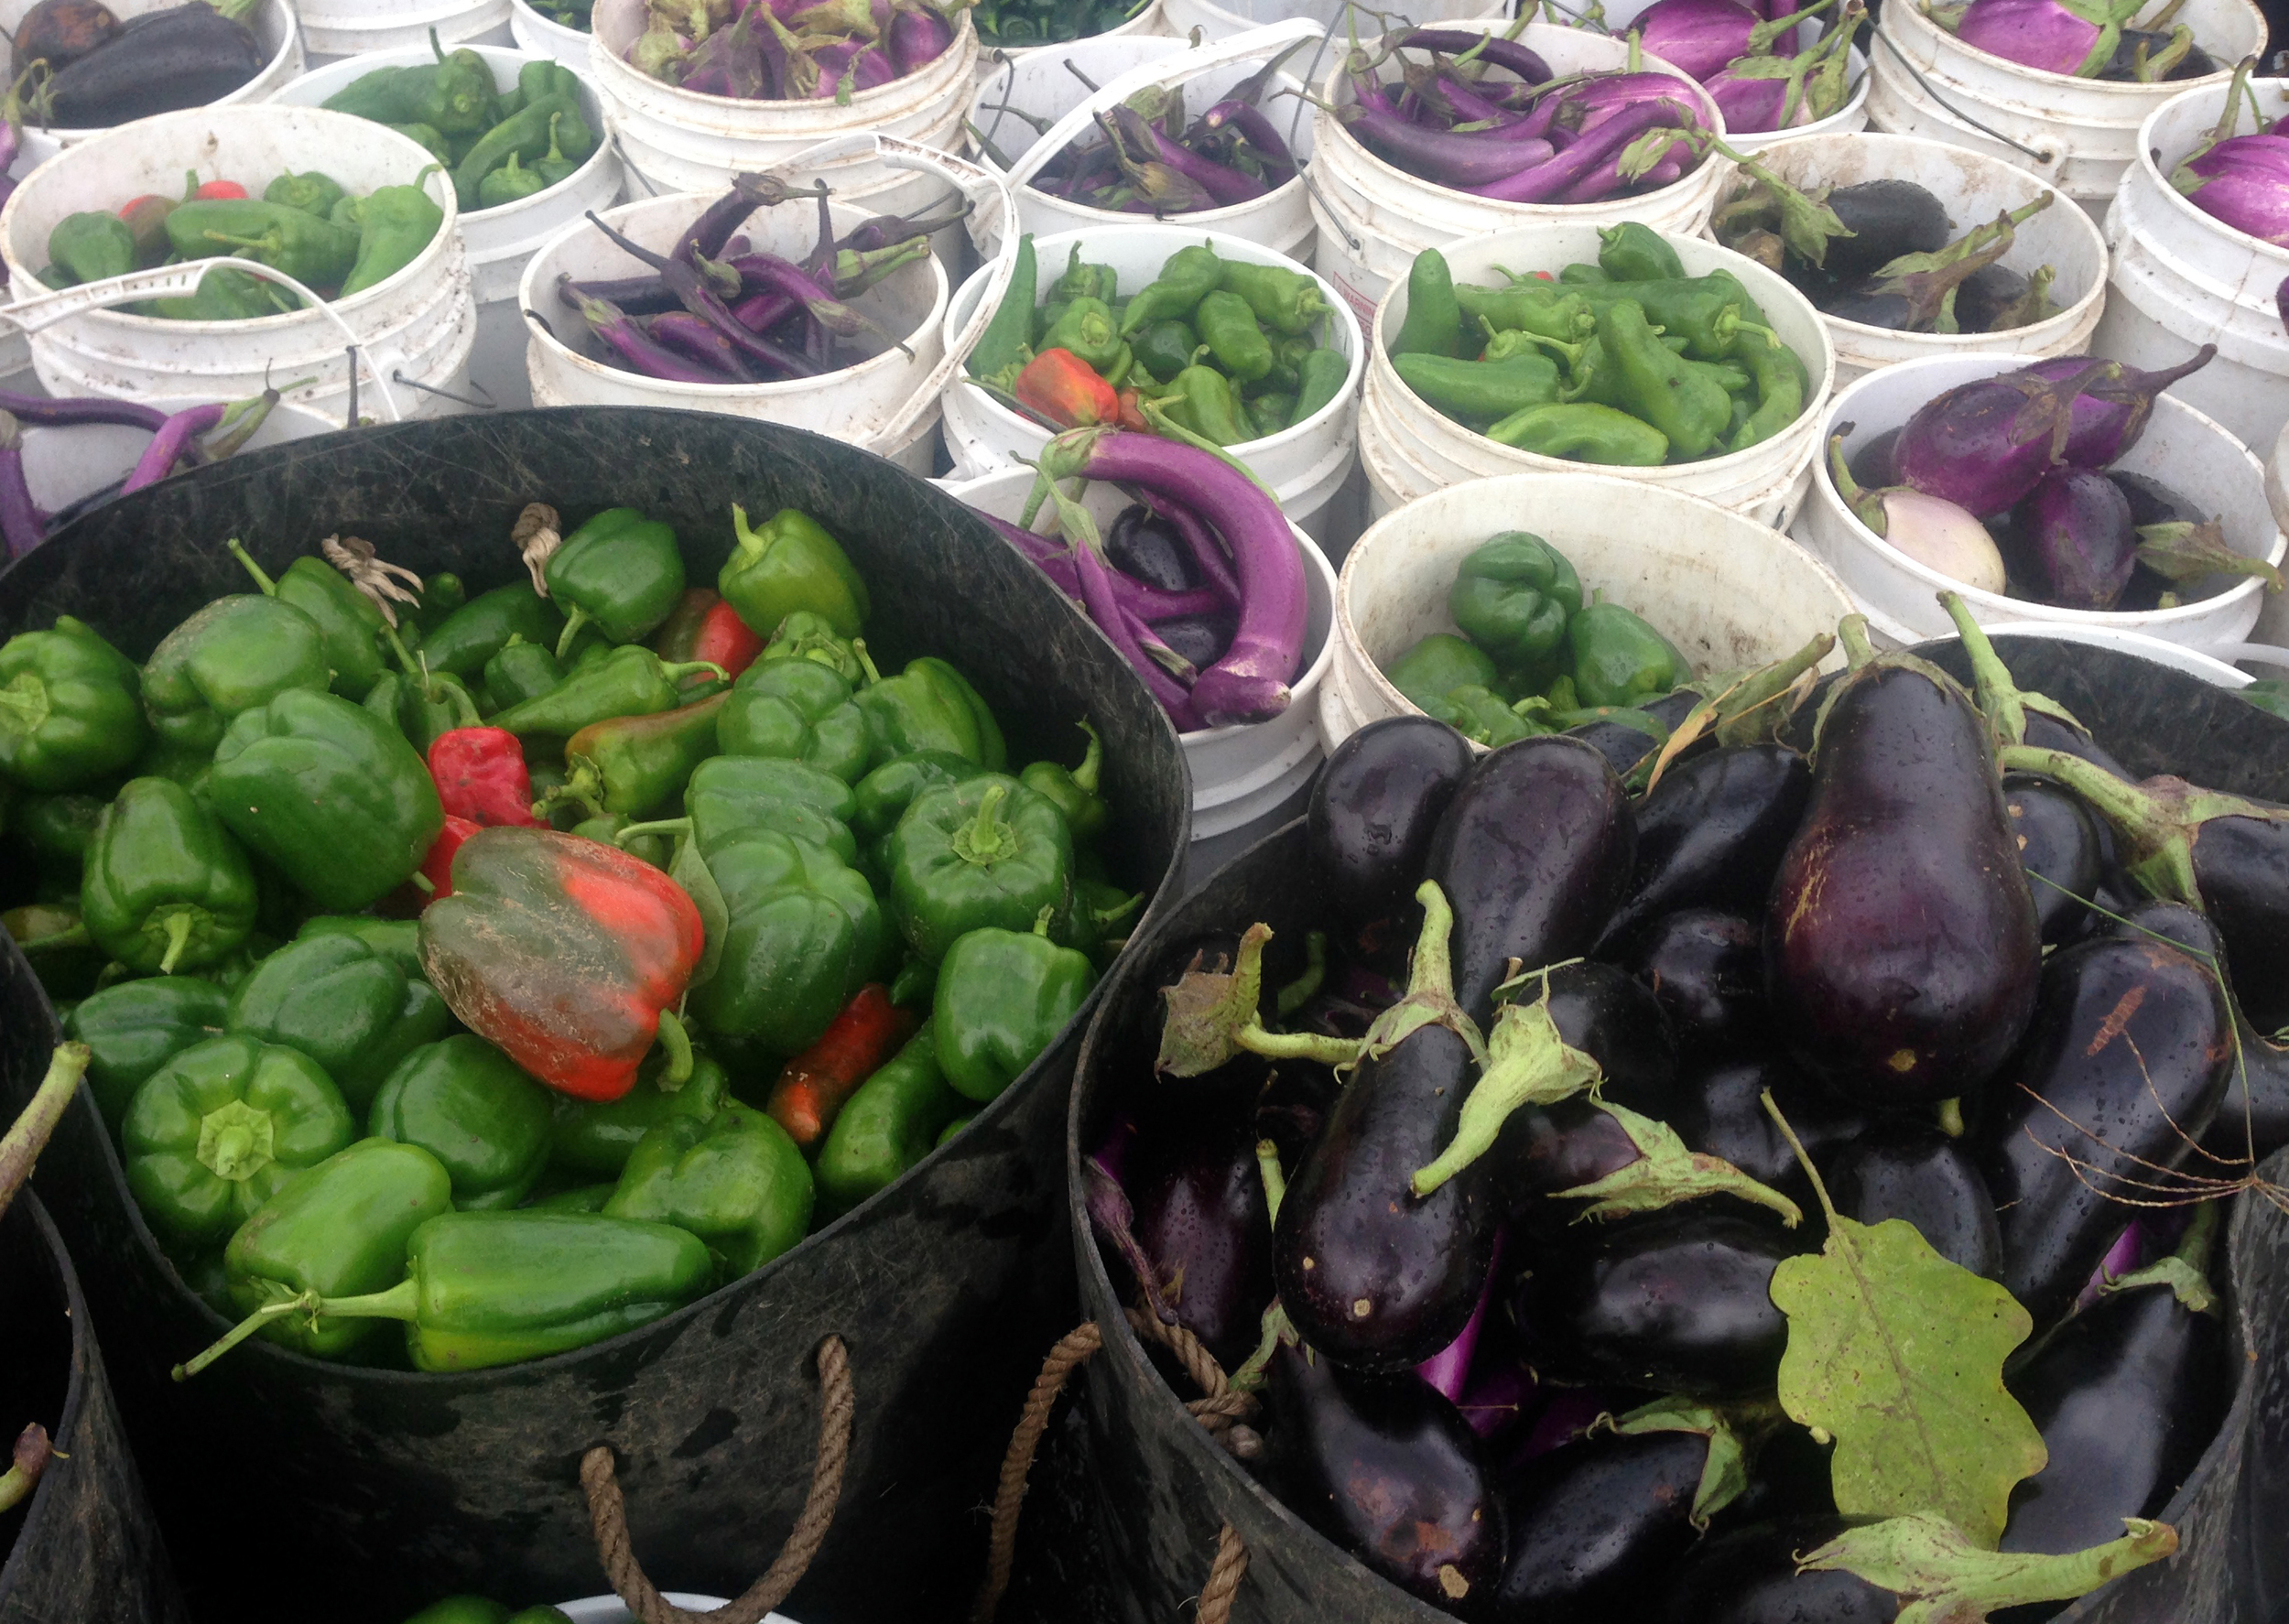 Peppers and Eggplants